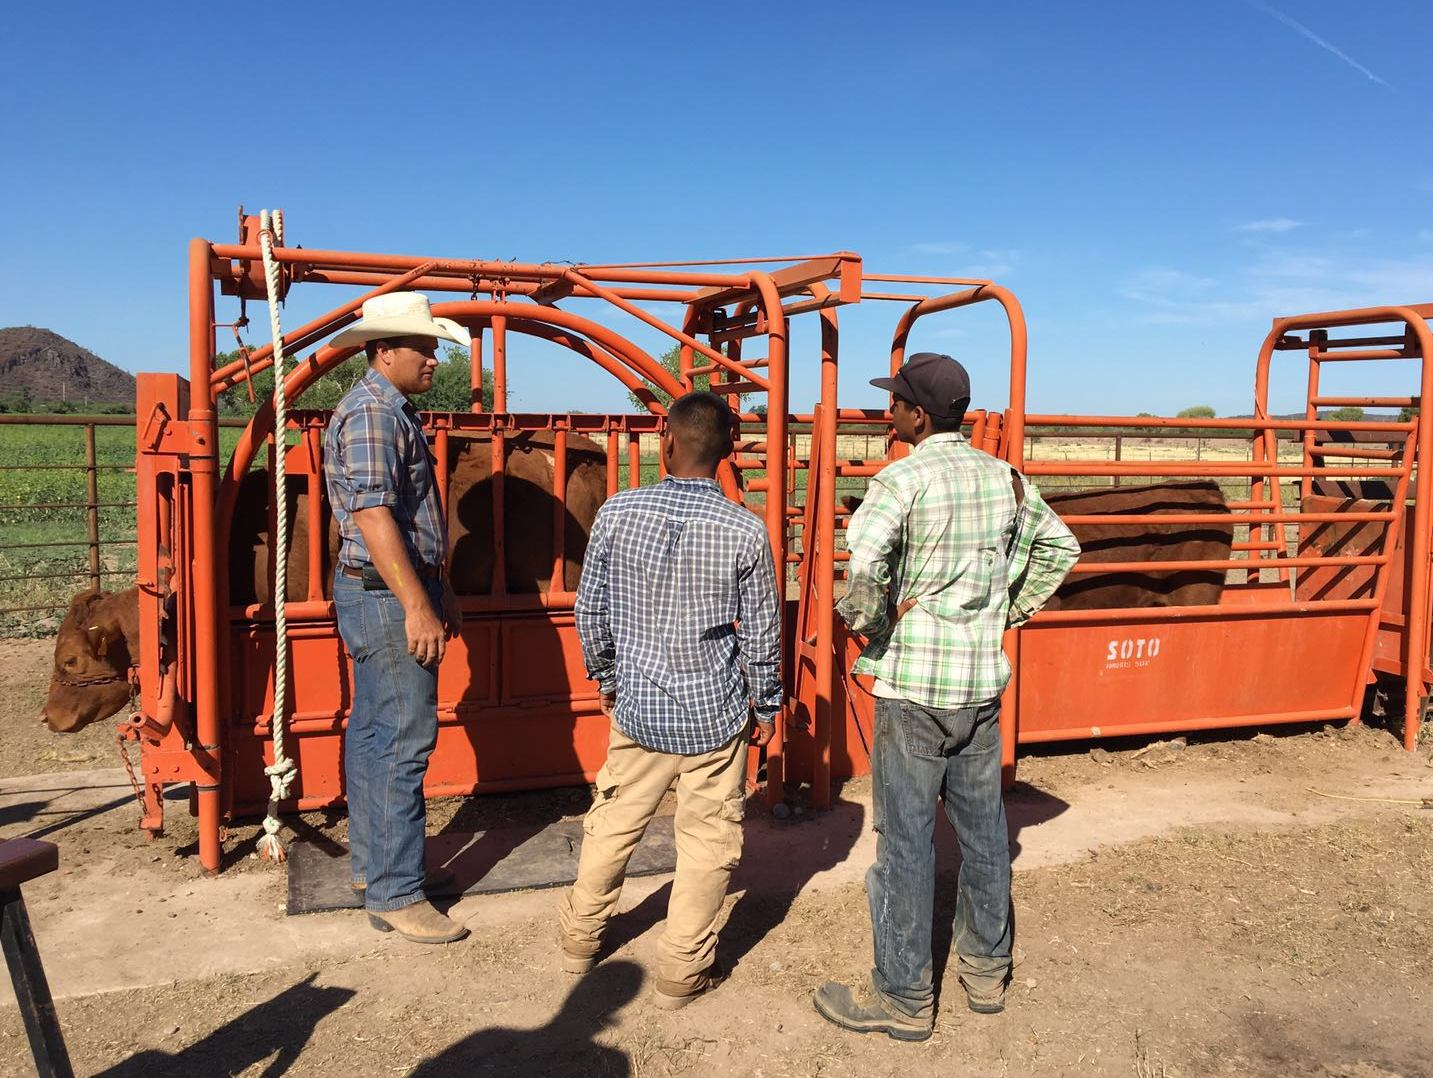 Joel and ranch employees get ready to vaccinate and brand the cattle